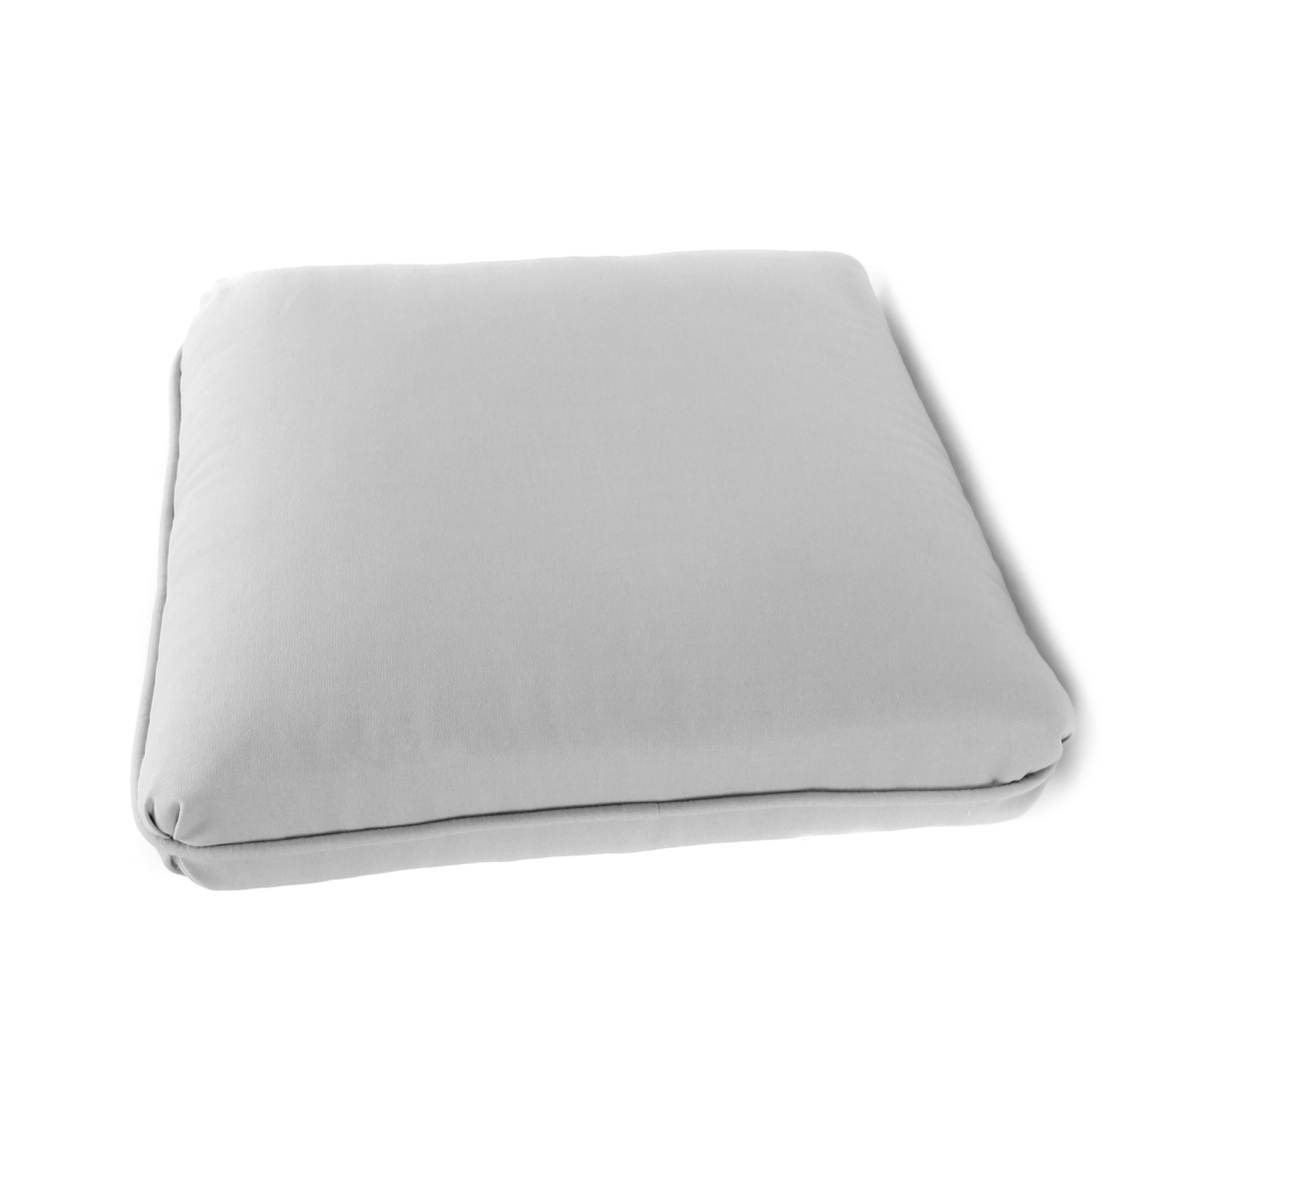 Tuck Corner Seat or Back Cushion (Available Sizes (TCS) - Width First: 21 x 23 x 7)